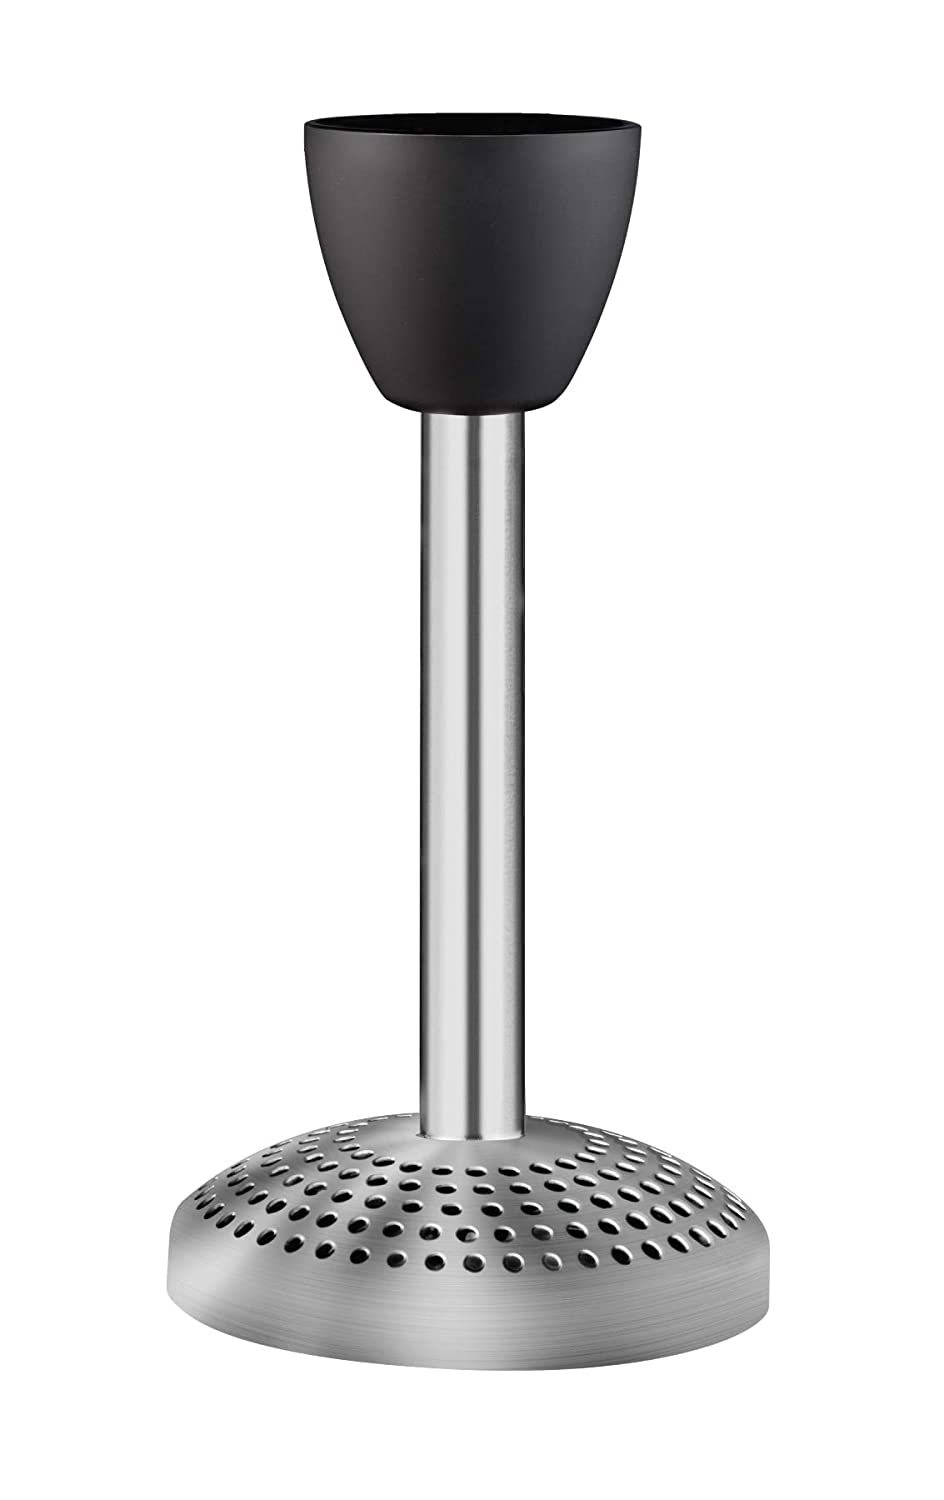 Chefman Electric Immersion Stick Masher Attachment Compatible with All RJ19 Hand Blenders, Purees Fruits and Vegetables, Blends Baby Food, Mashes Potatoes, Stainless Steel, FDA Approved Materials